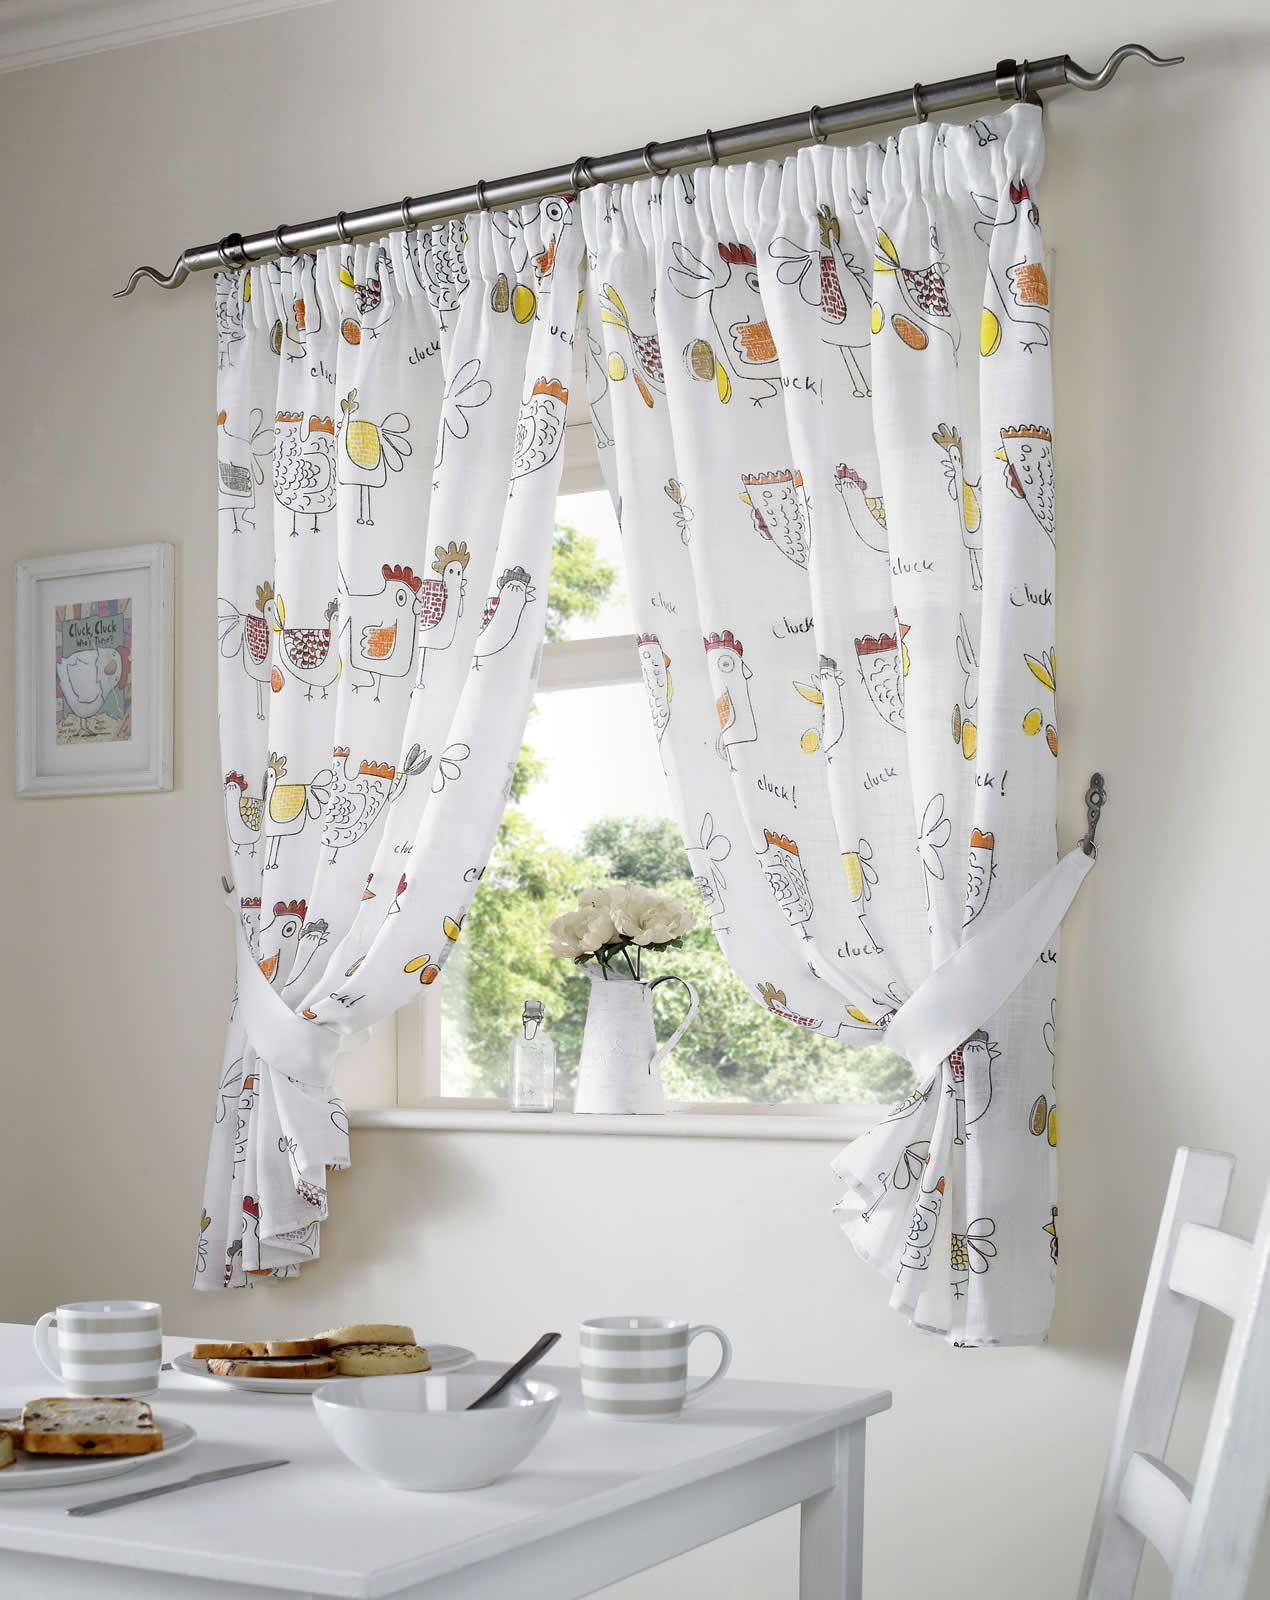 valance curtains for kitchen swivel chairs chickens ready made pairs dining room